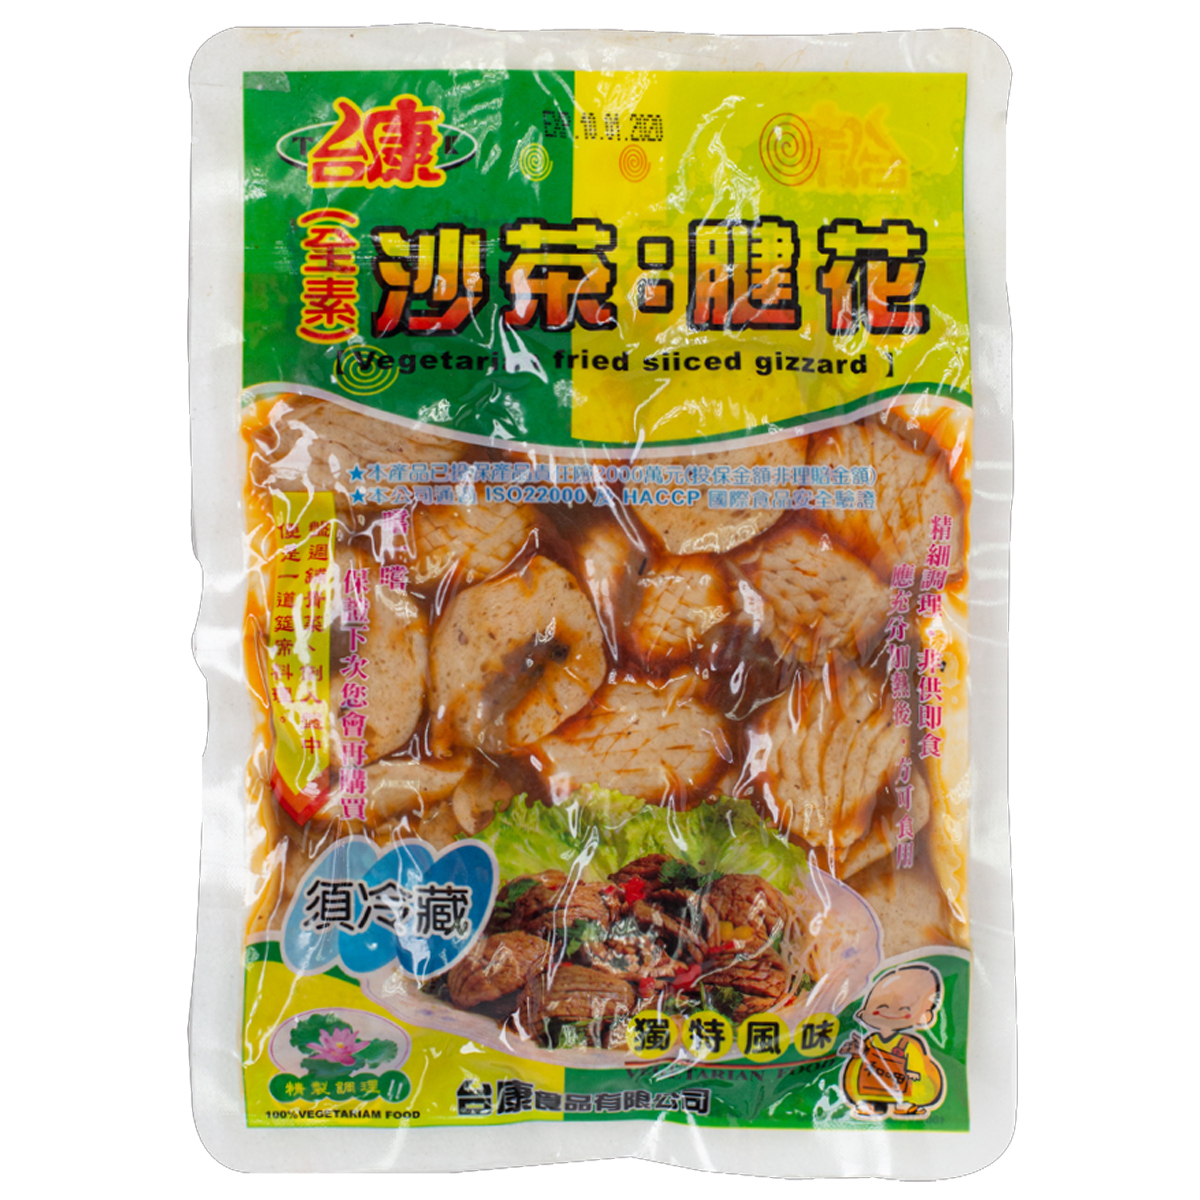 Image Vegetarian Fried Sliced Gizzard 大成-沙茶腱花 260grams